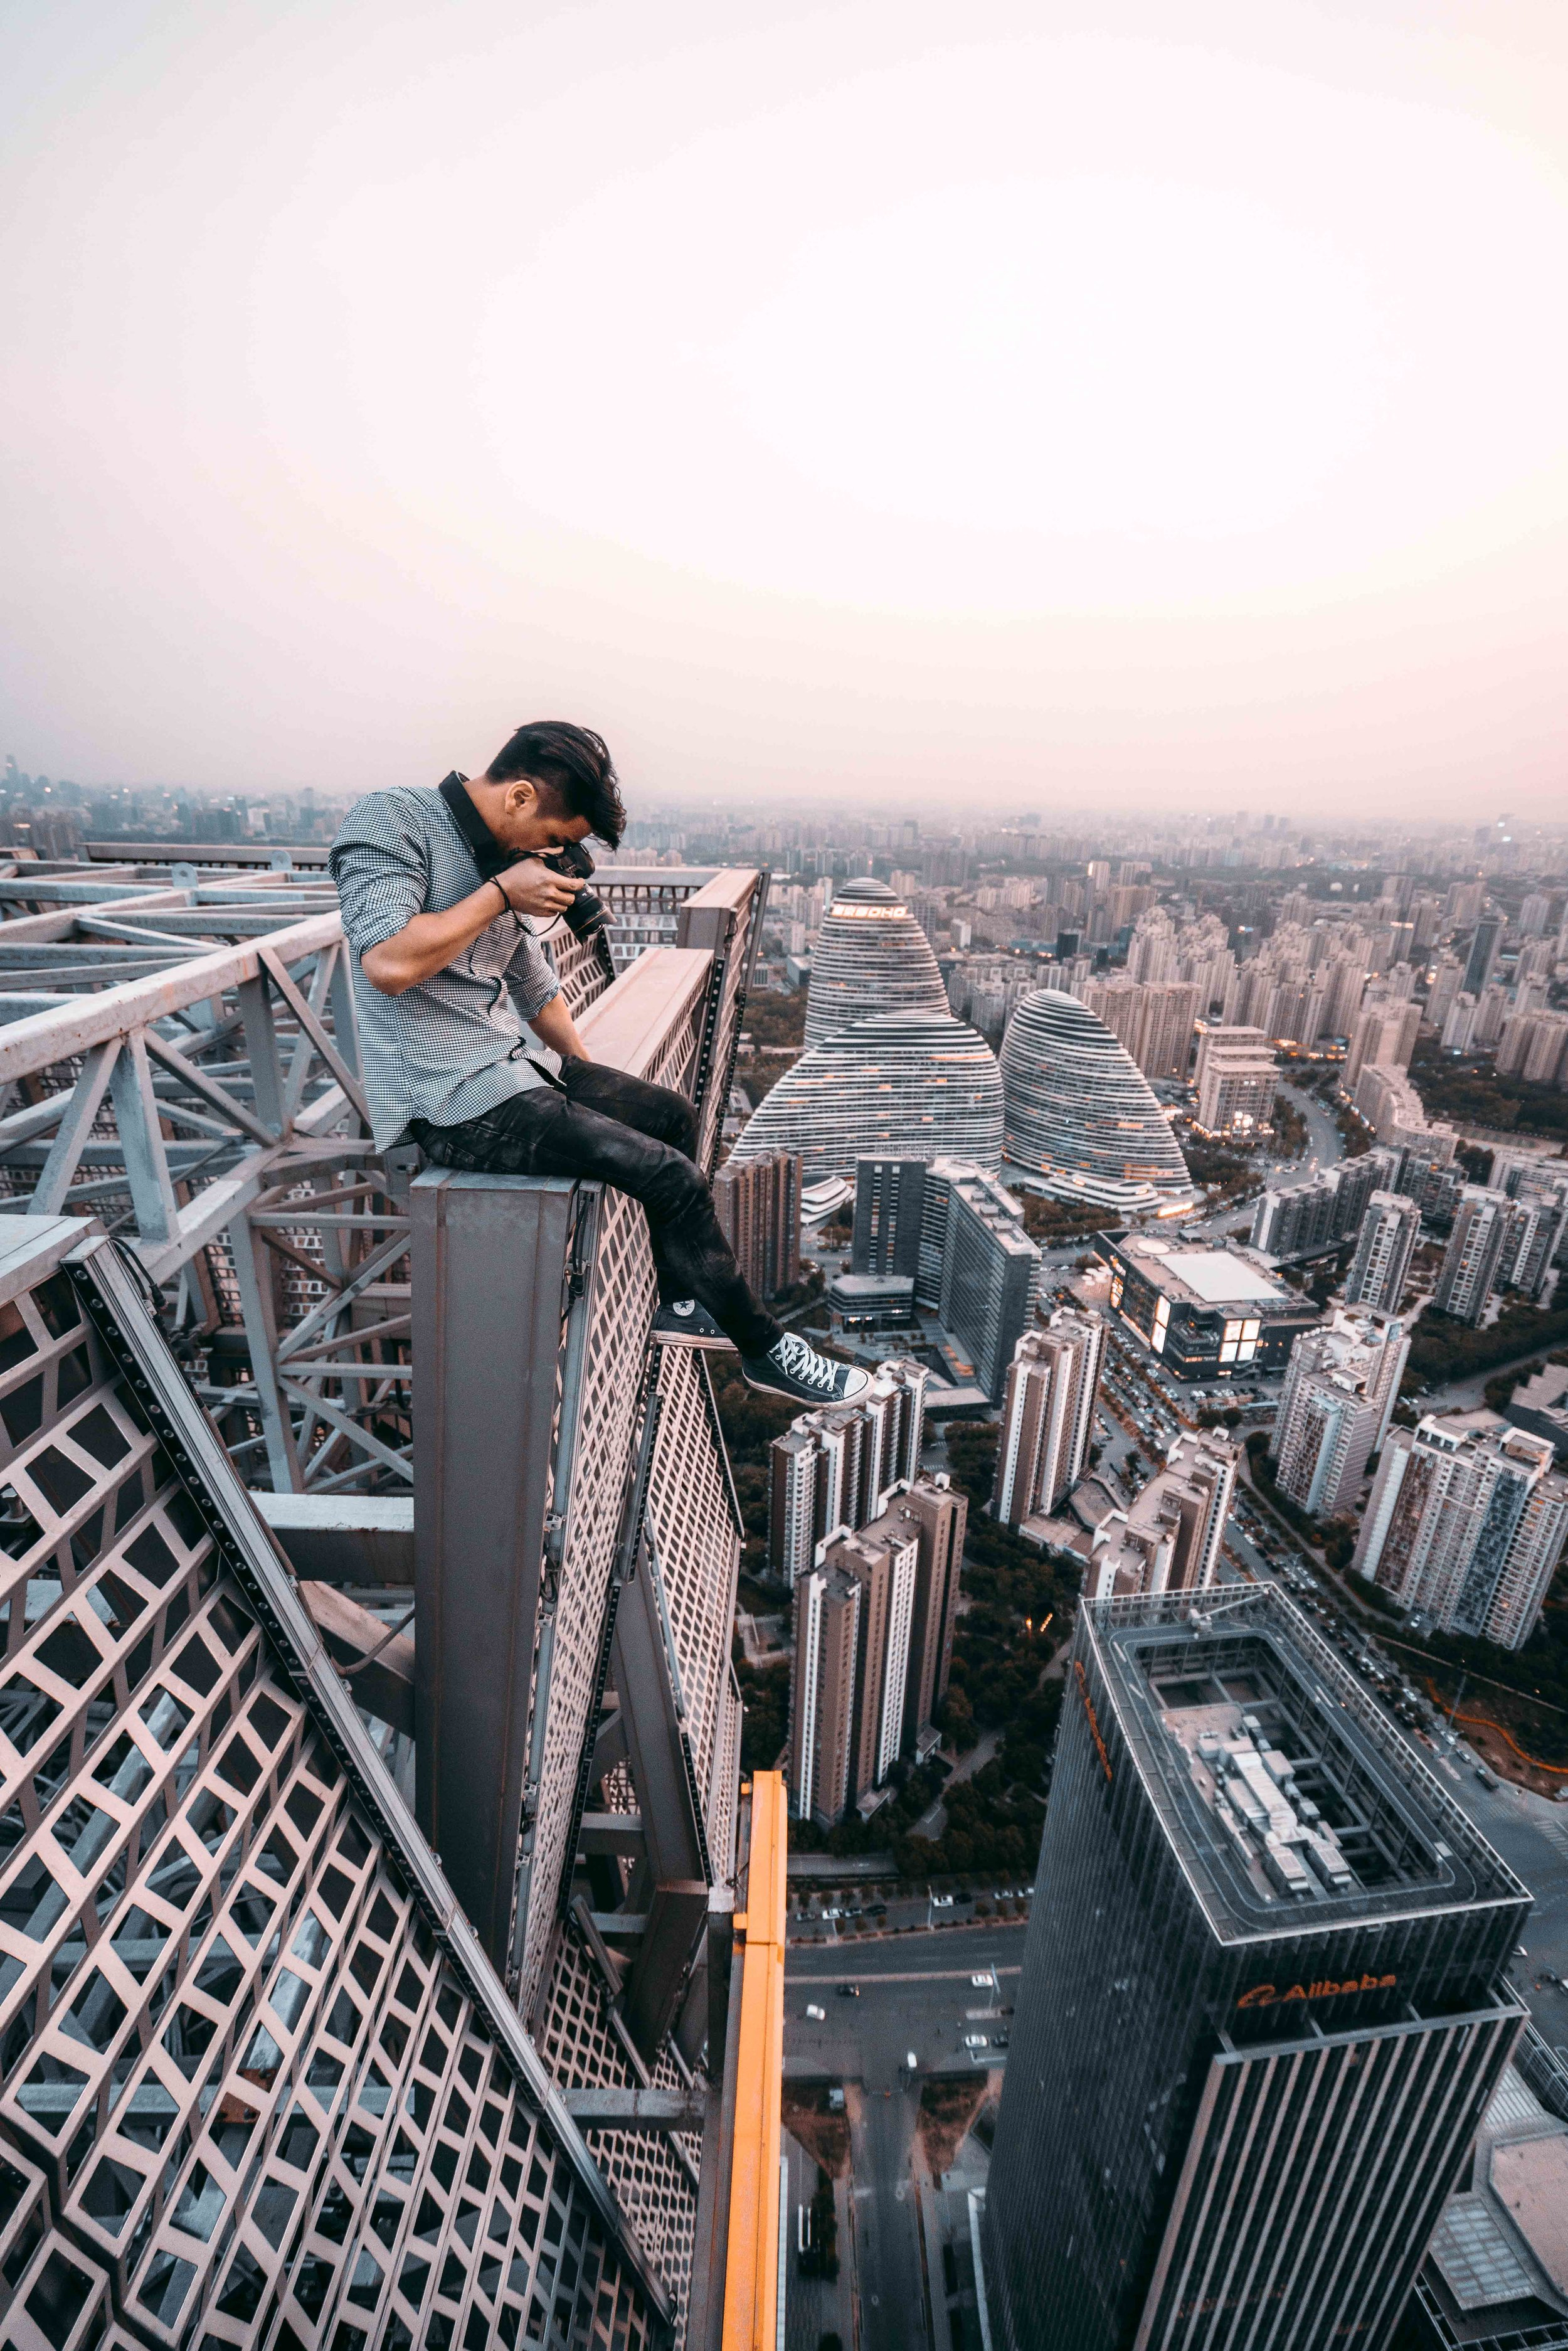 rooftopping-beijing-get-some-fresh-air.jpg